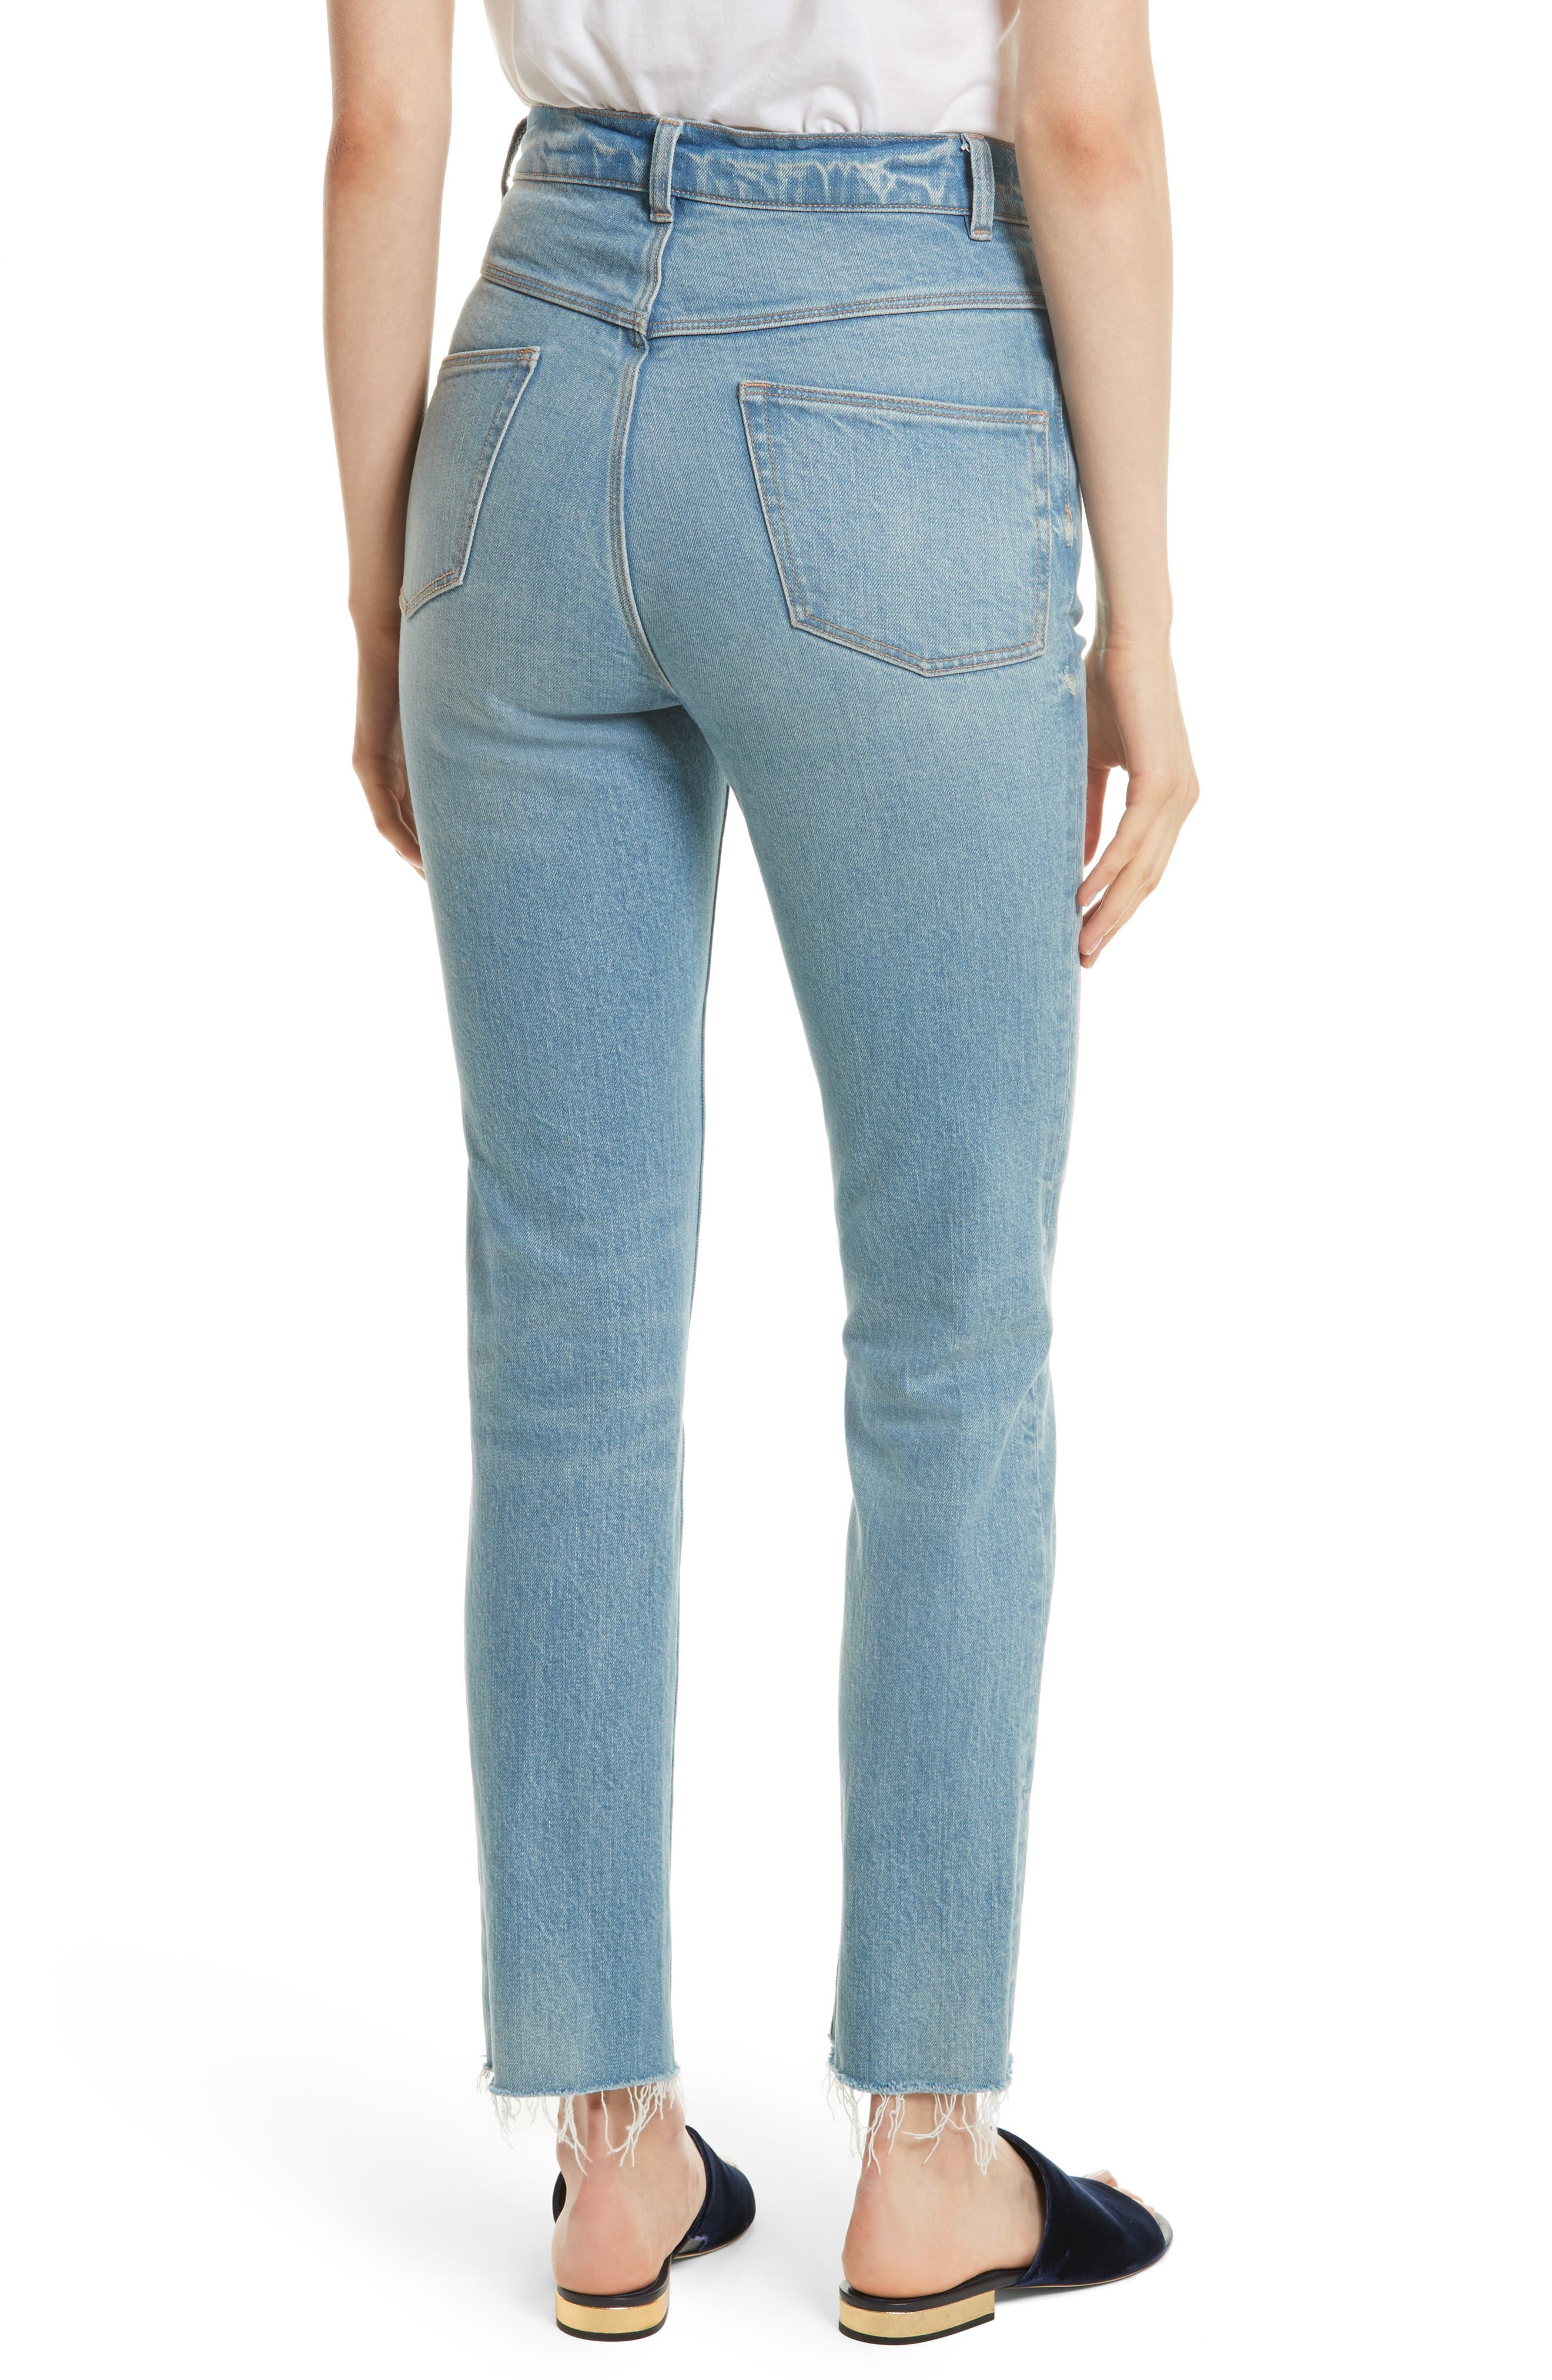 Ines High Waist Ankle Jeans,                             Alternate thumbnail 2, color,                             469